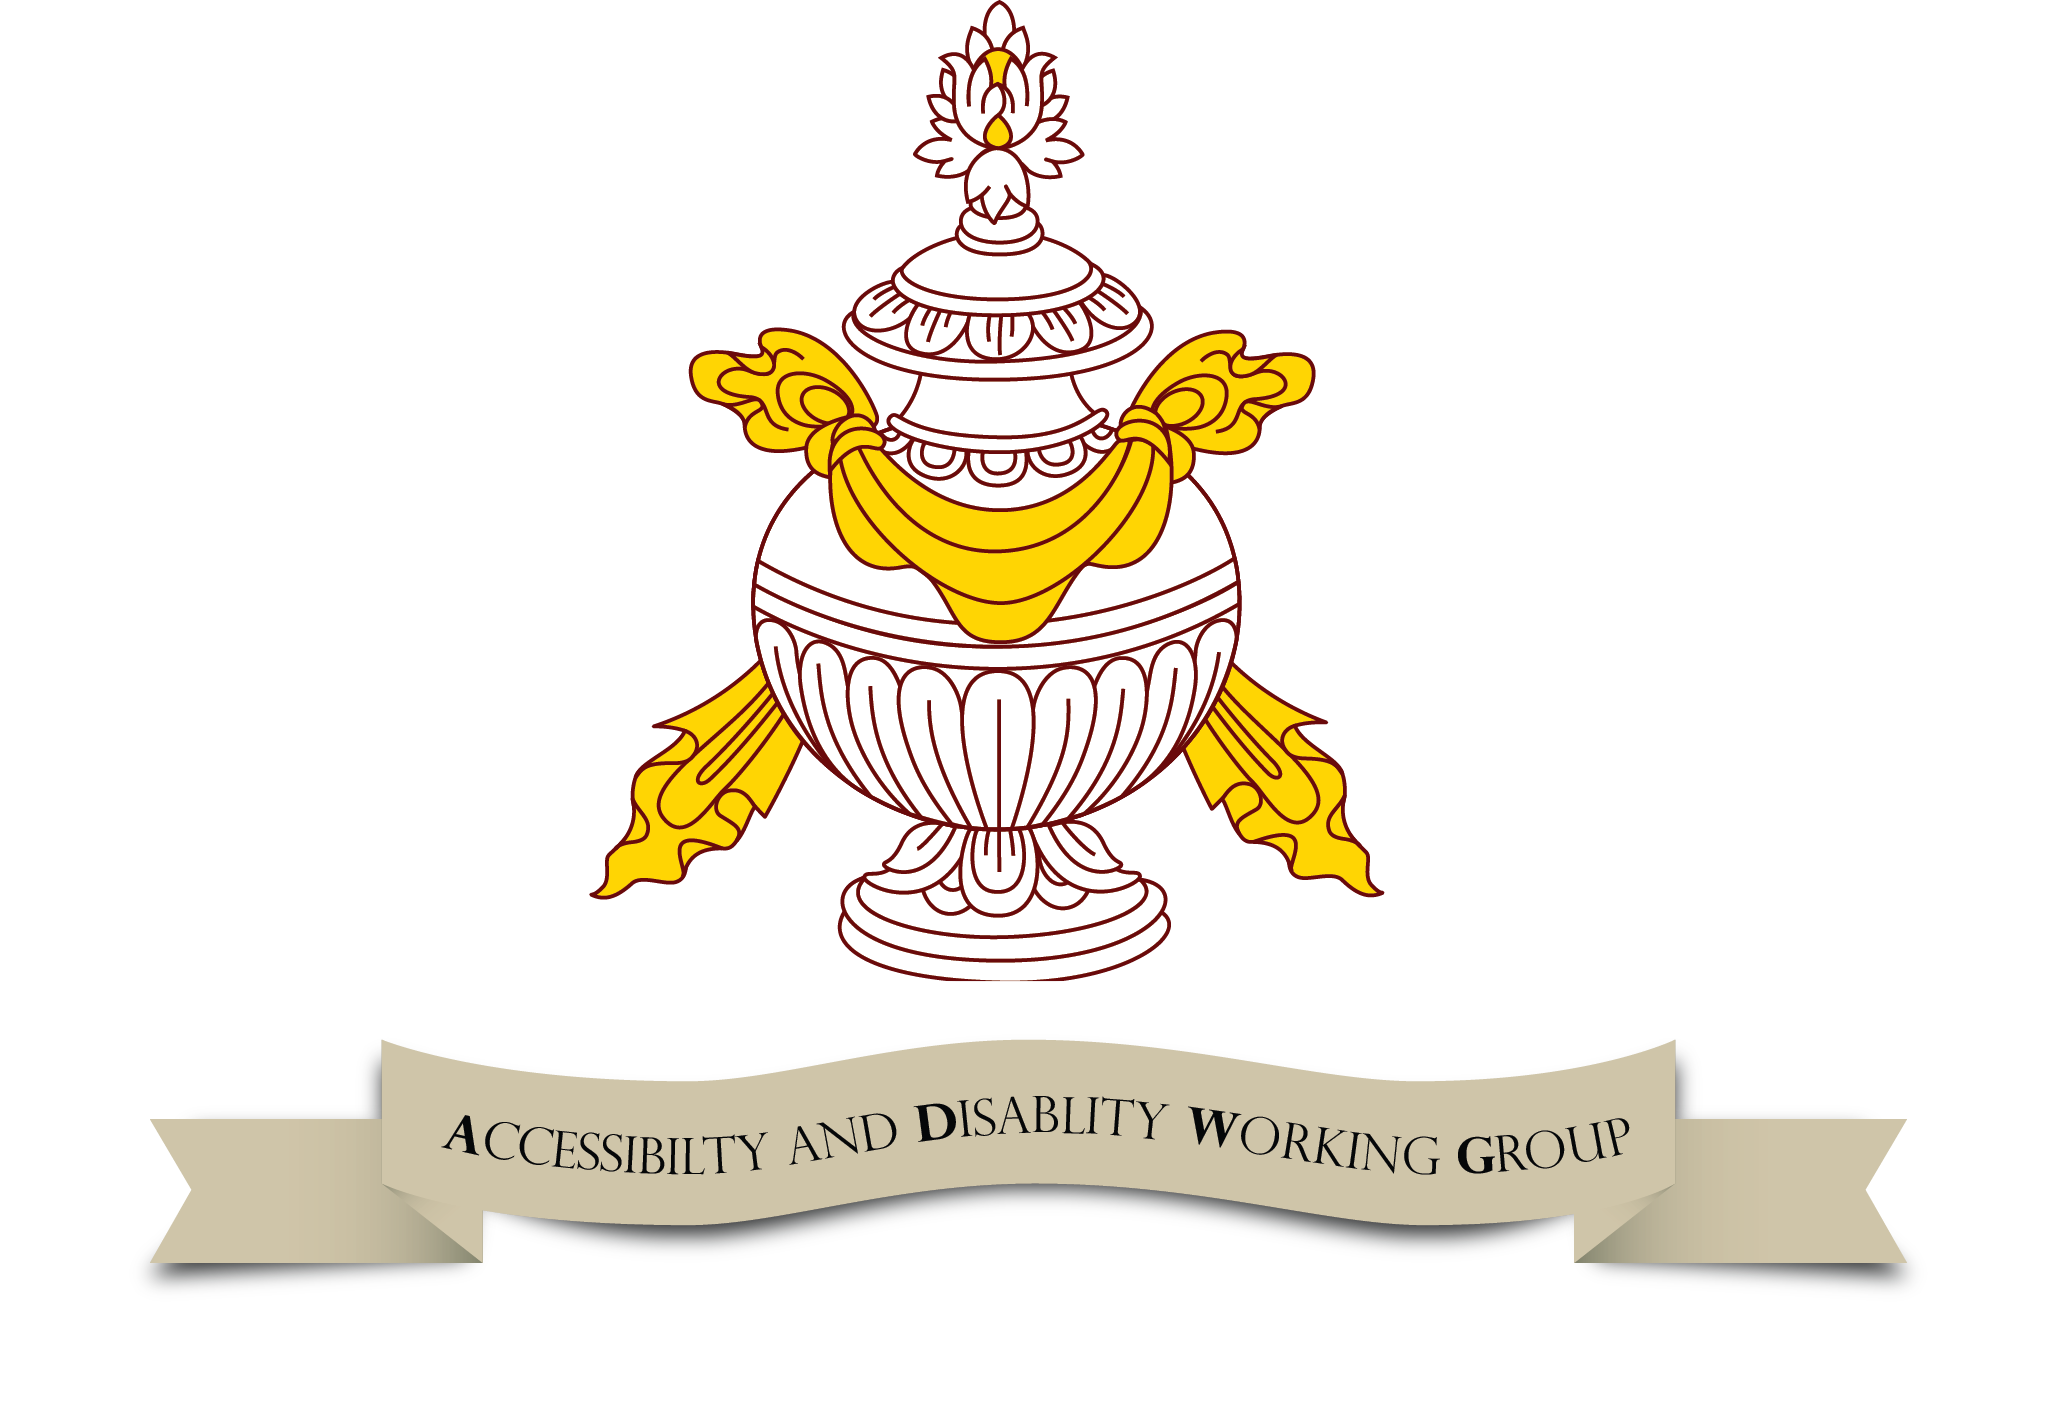 Logo of the Accessibility and Disability working group of the Office of Social Well-being and Health - a vase with banner underneath